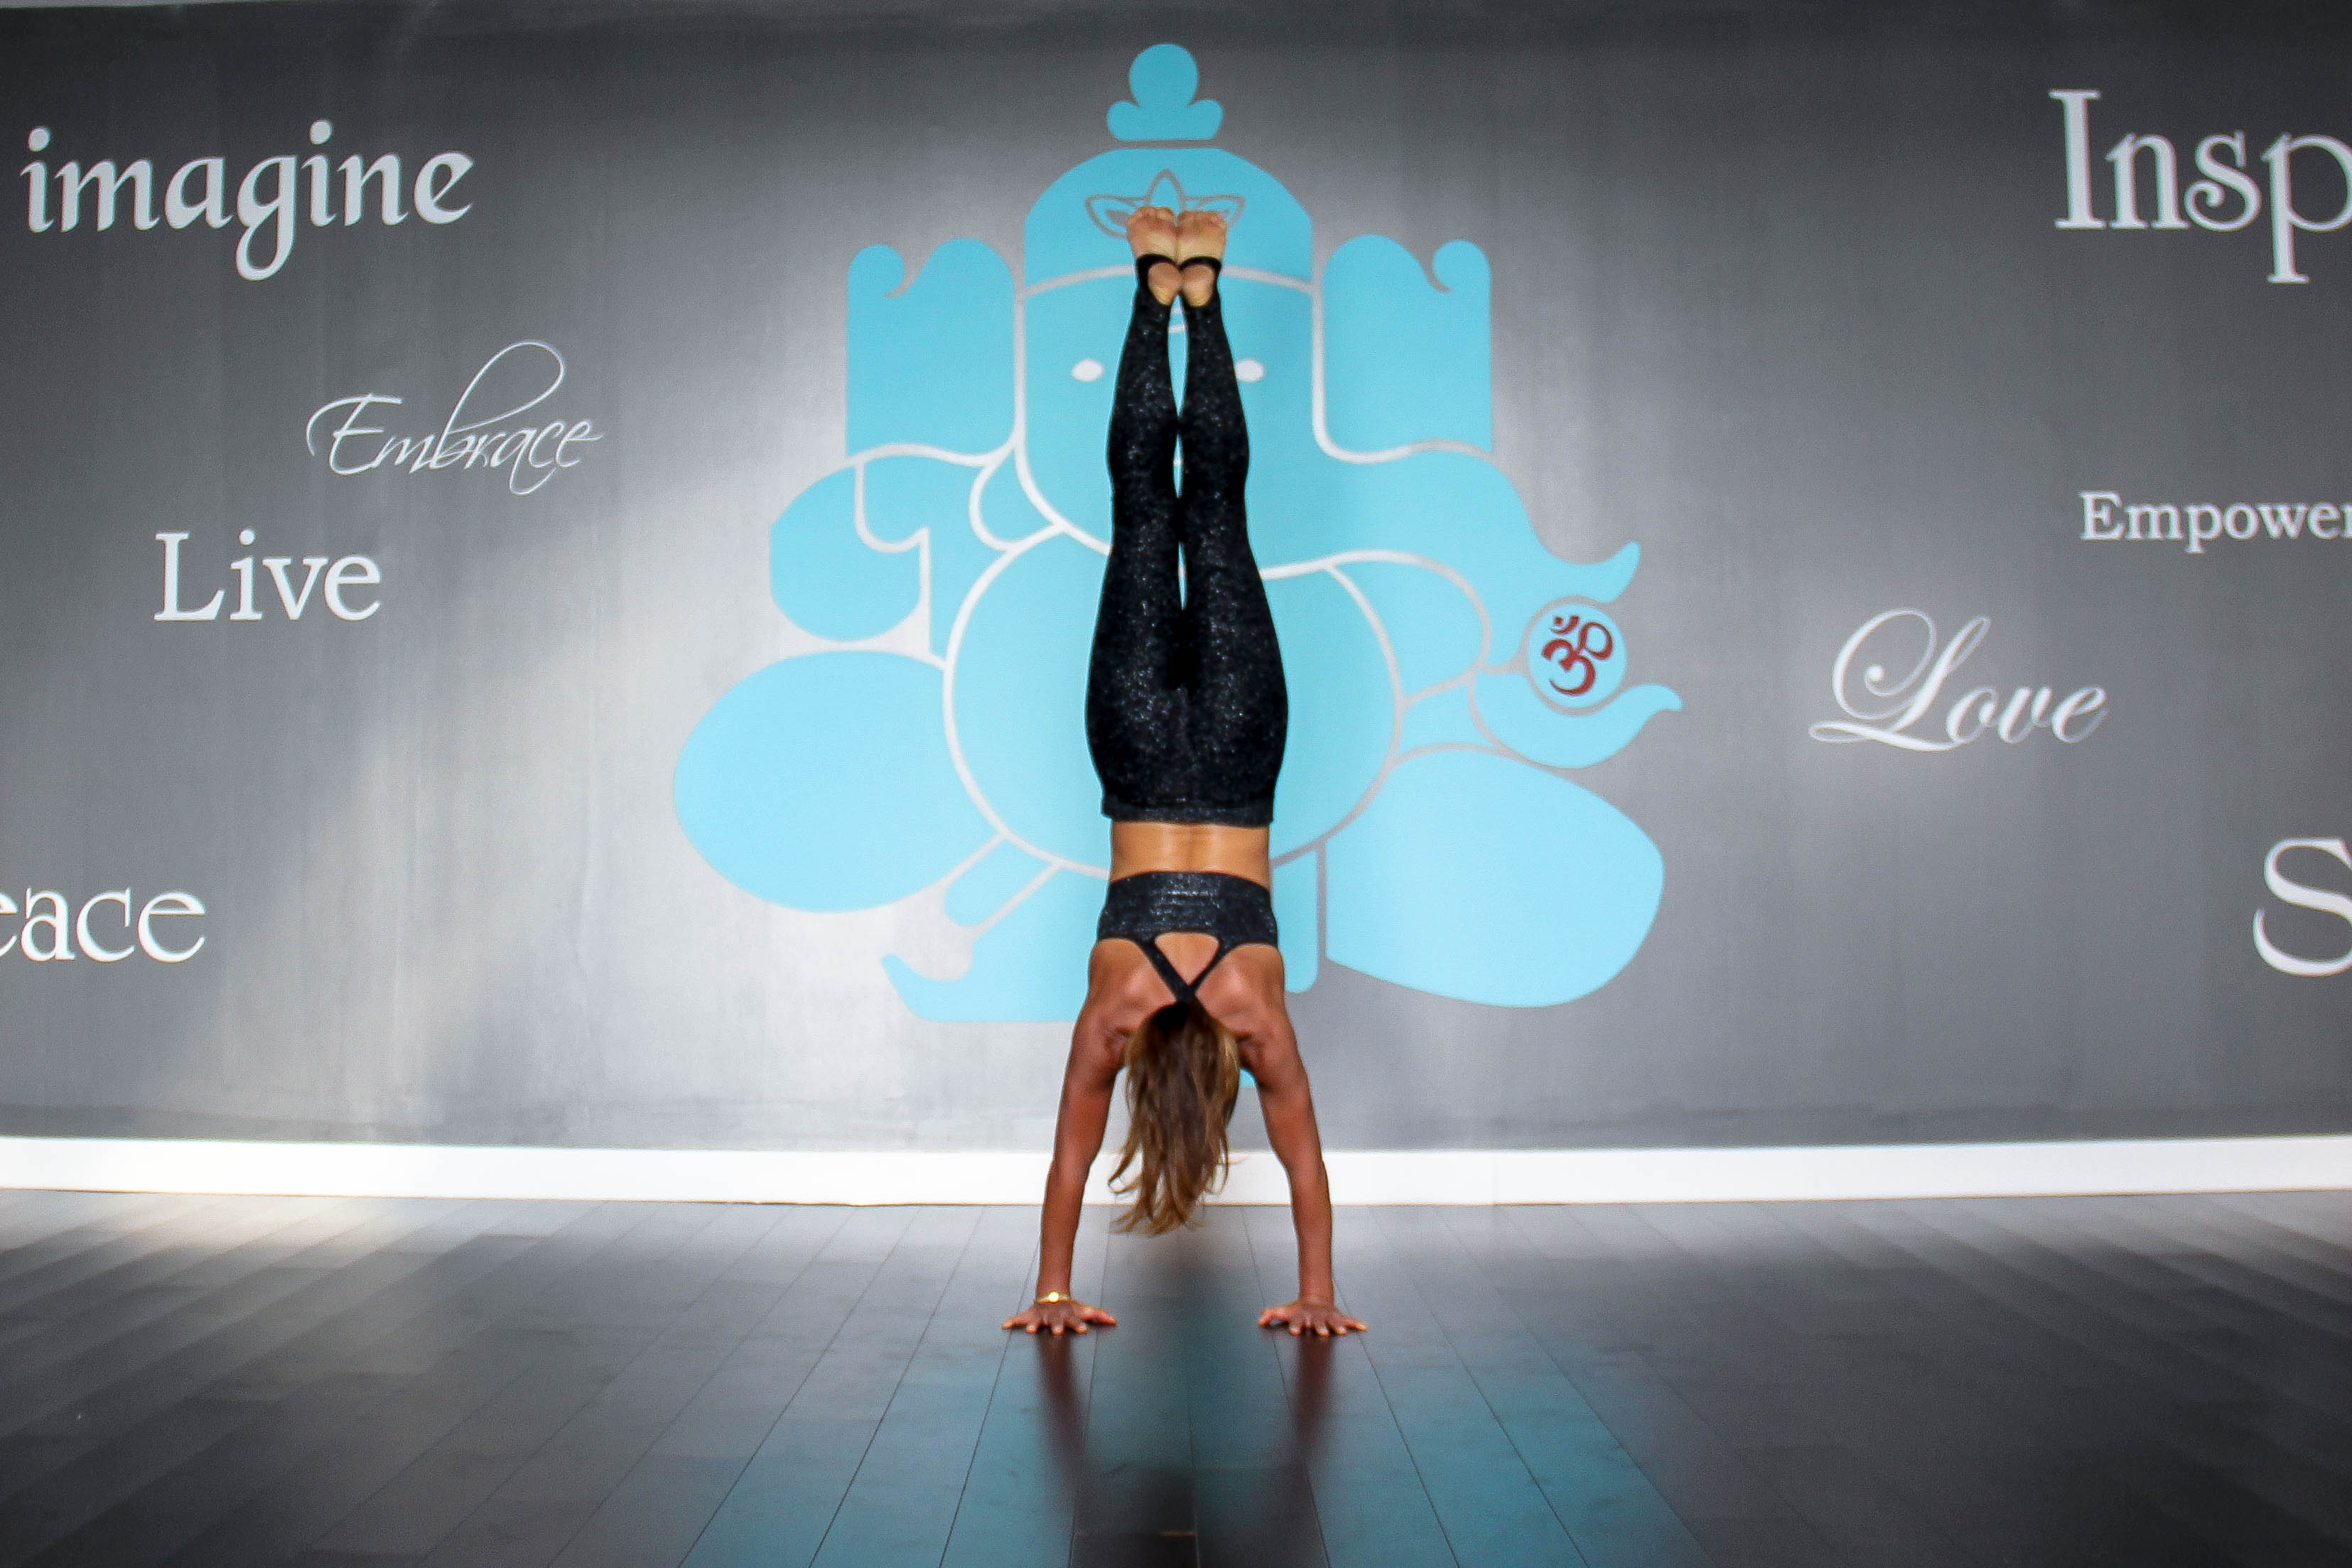 5 Reasons to Renovate Your Yoga Routine